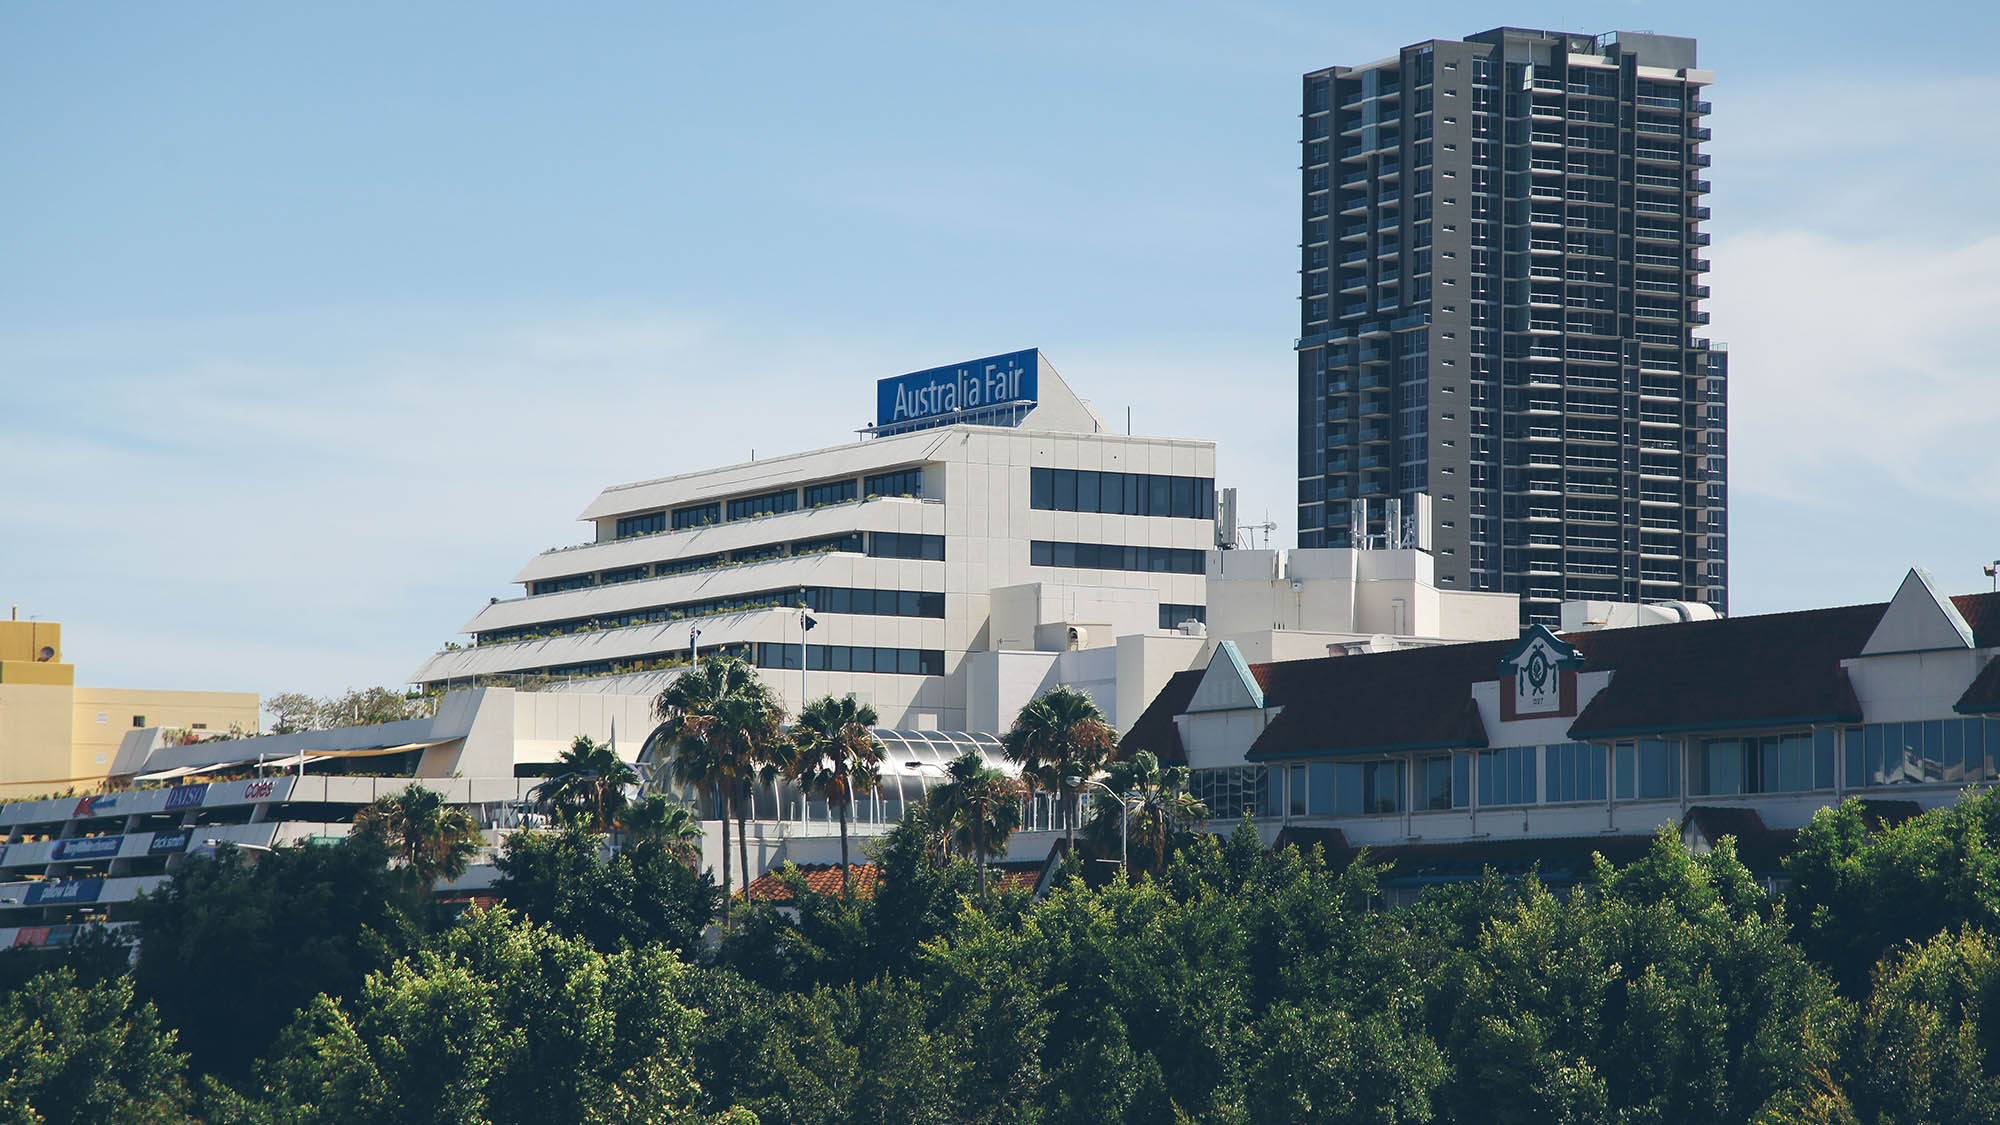 Australia Fair is one of the largest shopping centres on the Gold COast and offers sweeping views across to Surfers Paradise.